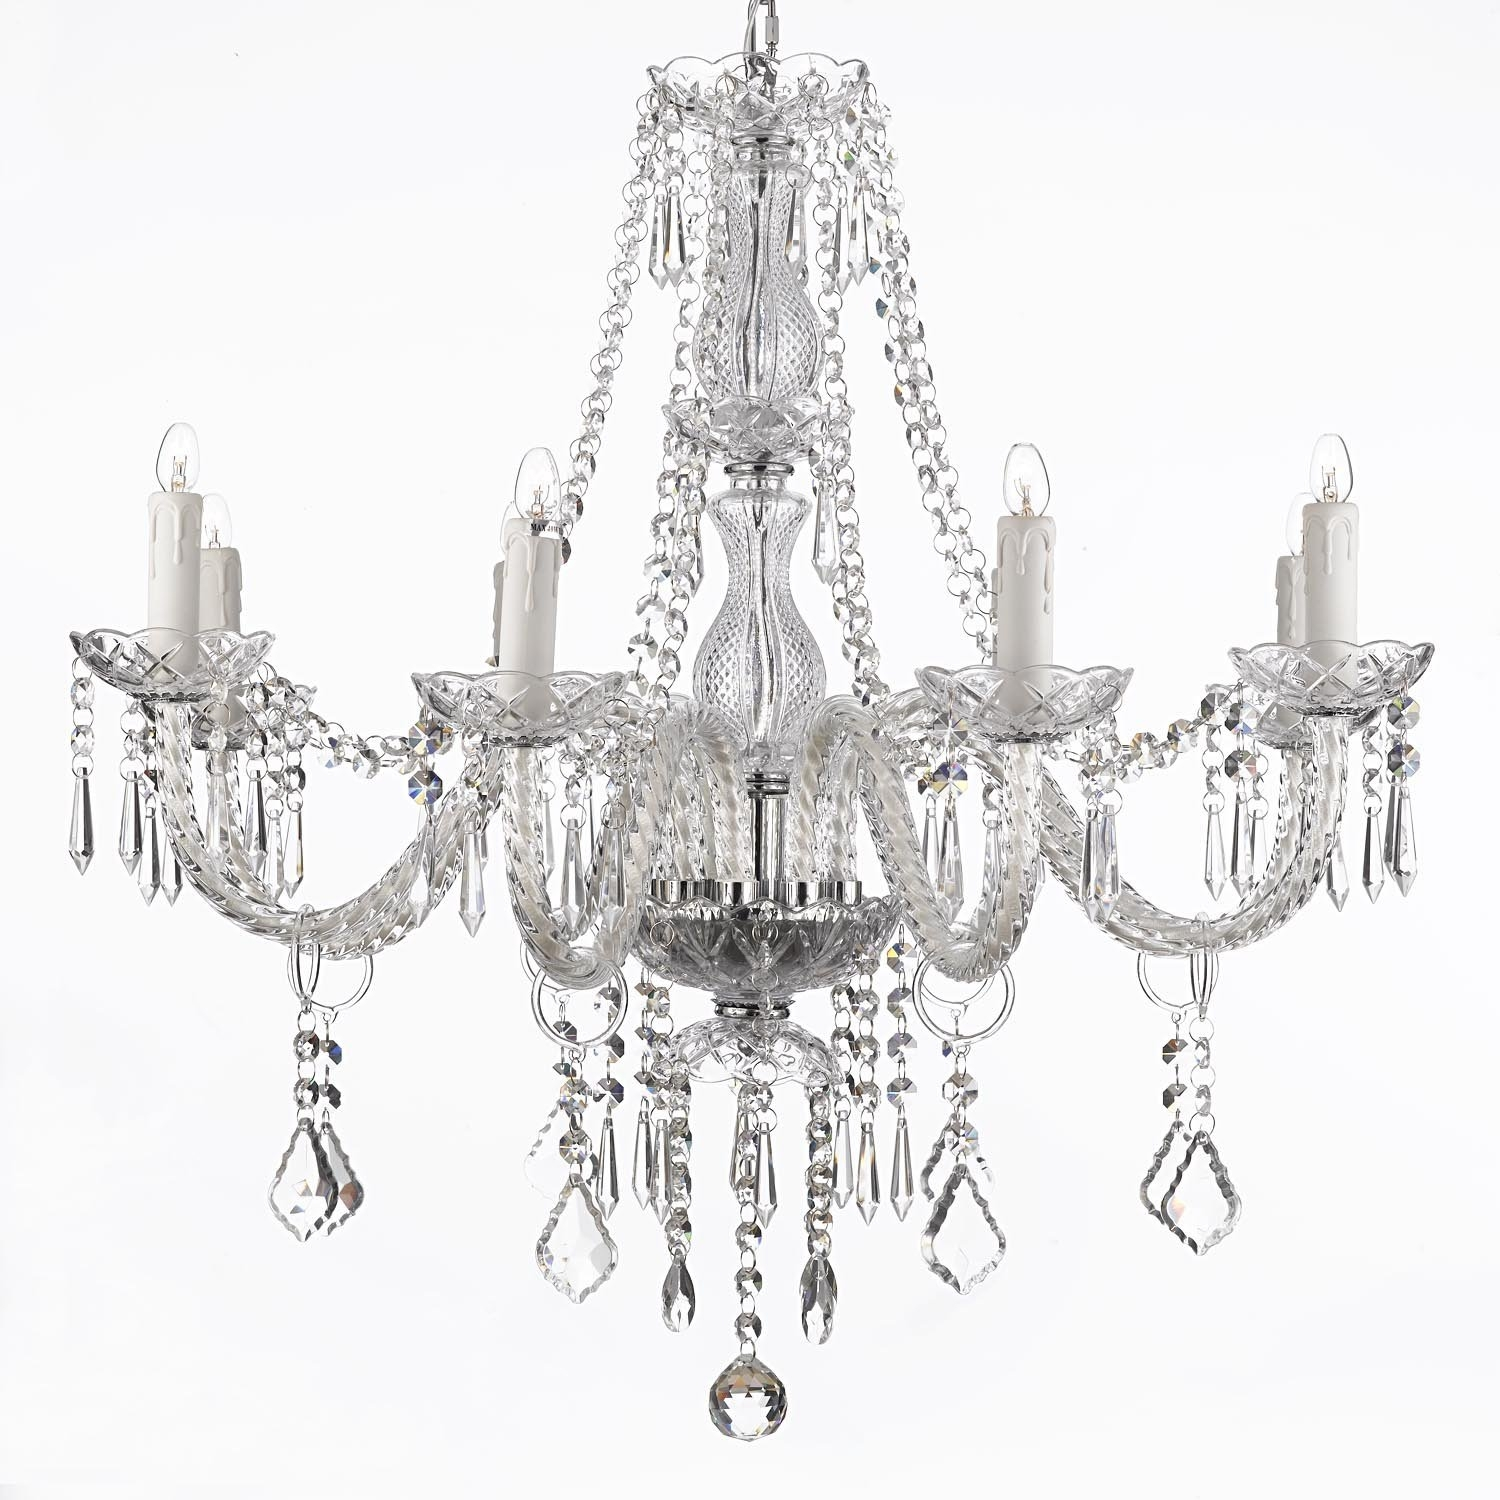 How To Choose The Best Chandelier Buyers Guide Intended For Small Chandeliers For Low Ceilings (Image 8 of 15)